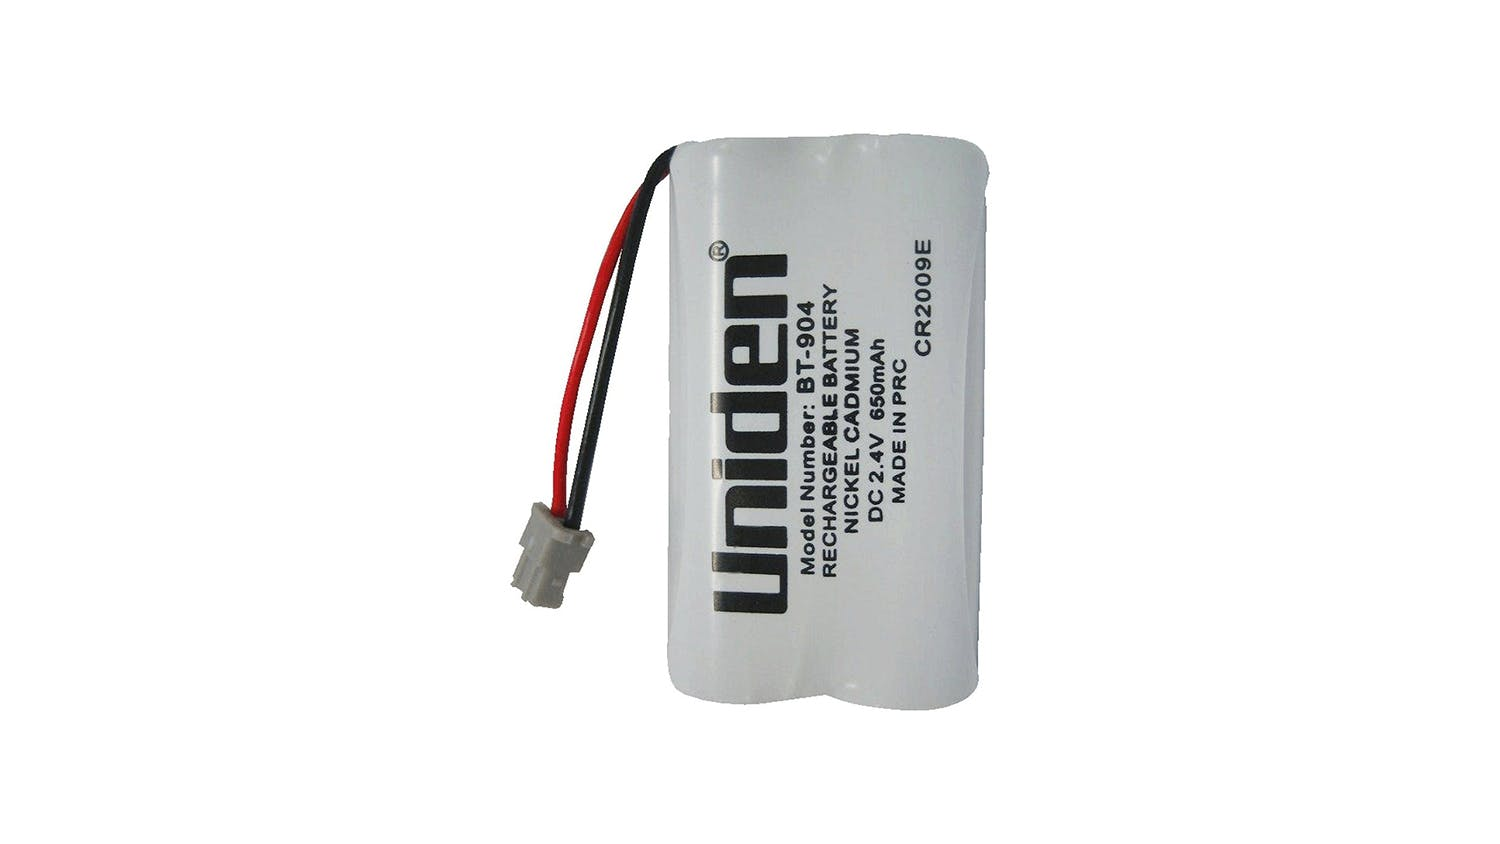 Uniden BT904 Replacement Battery for EXP370 Series Phones